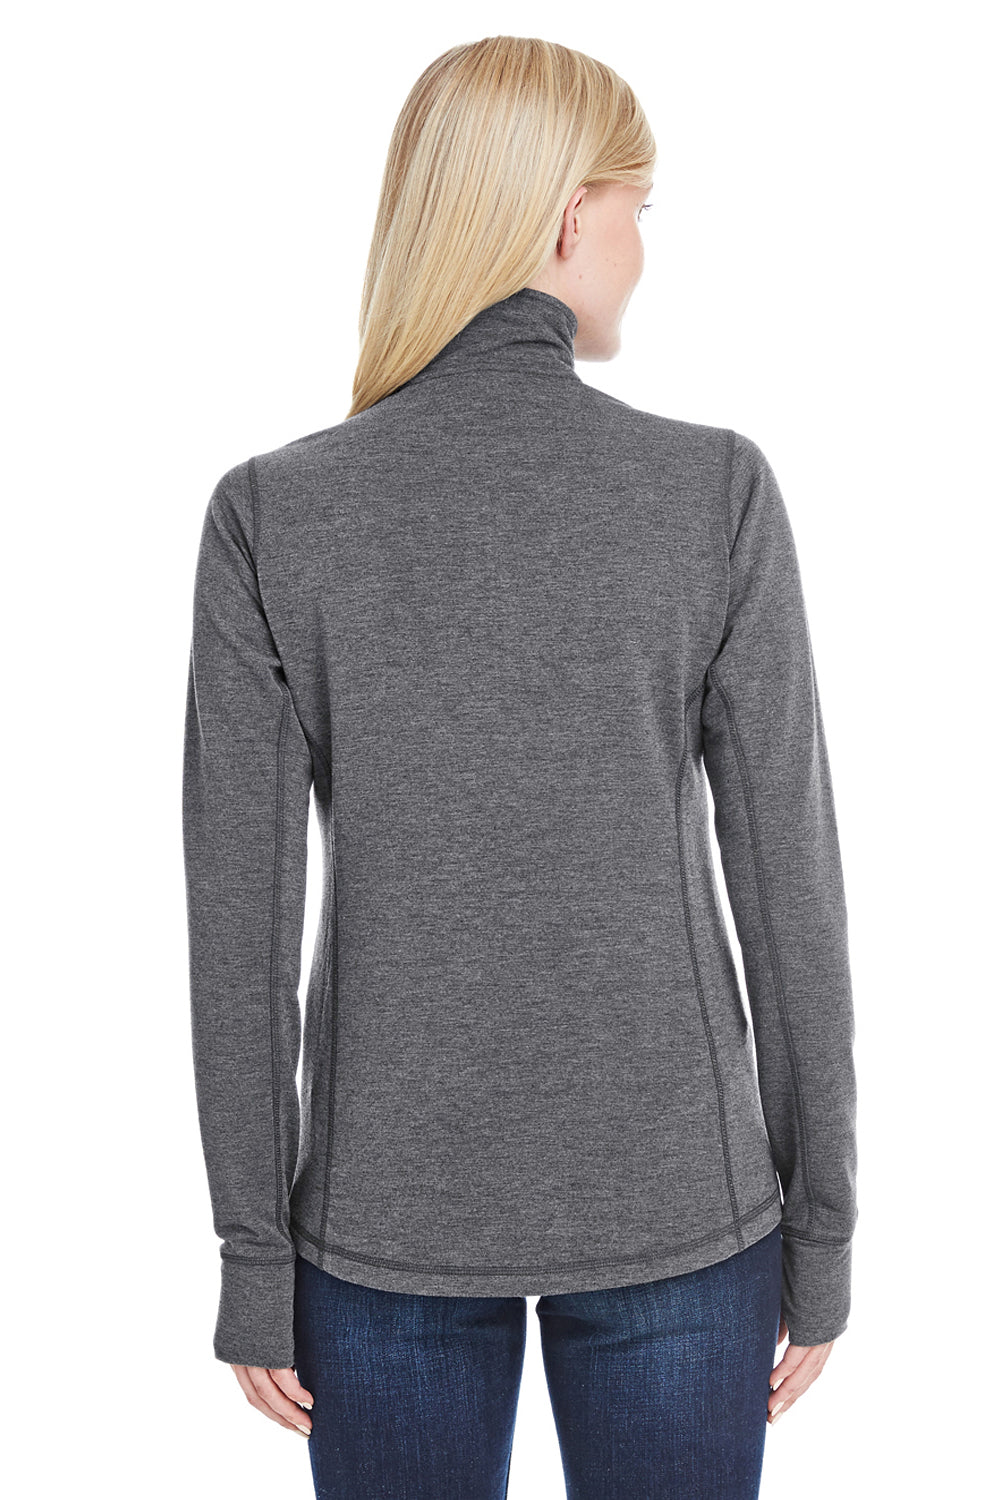 J America JA8433 Womens Omega Sueded Terry 1/4 Zip Sweatshirt Charcoal Grey Back